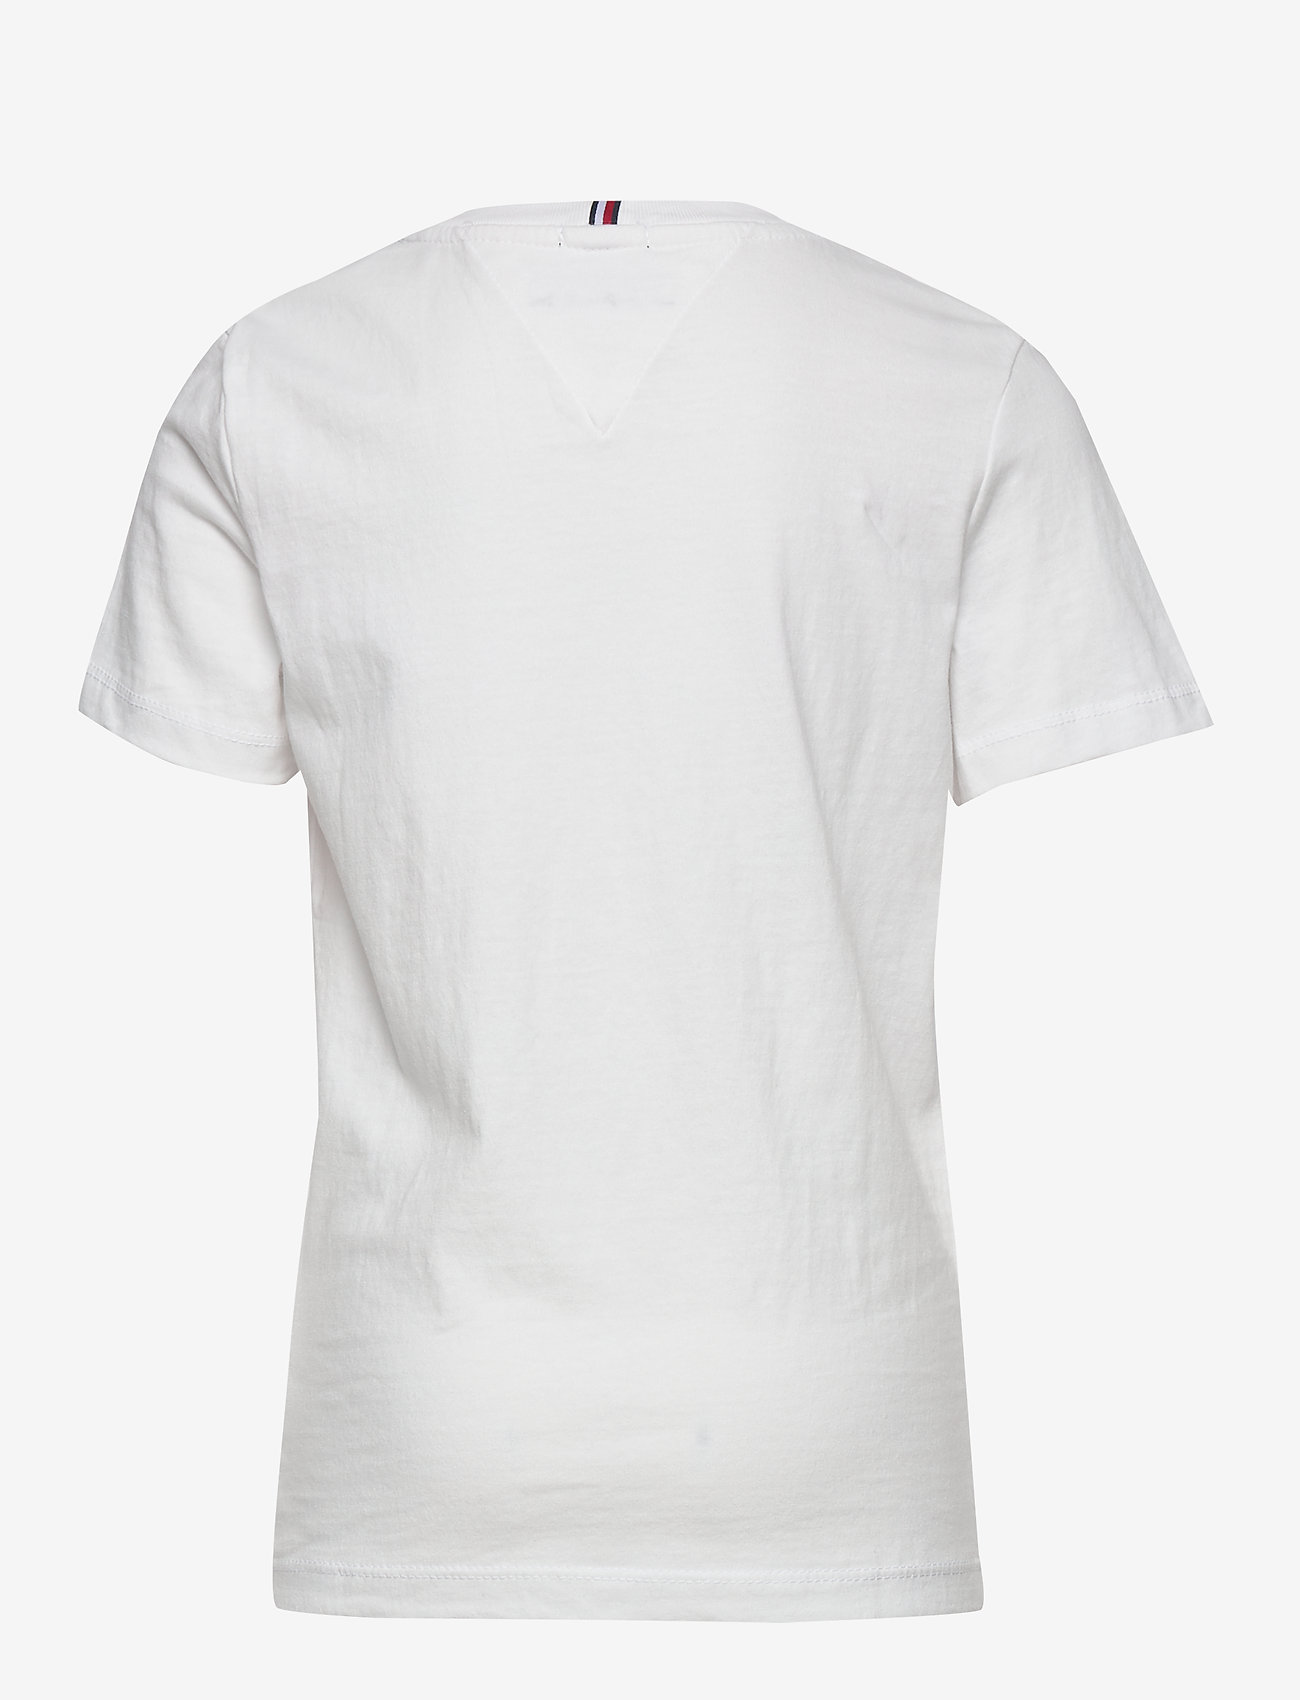 Tommy Hilfiger - ESSENTIAL TEE S/S - short-sleeved - white 658-170